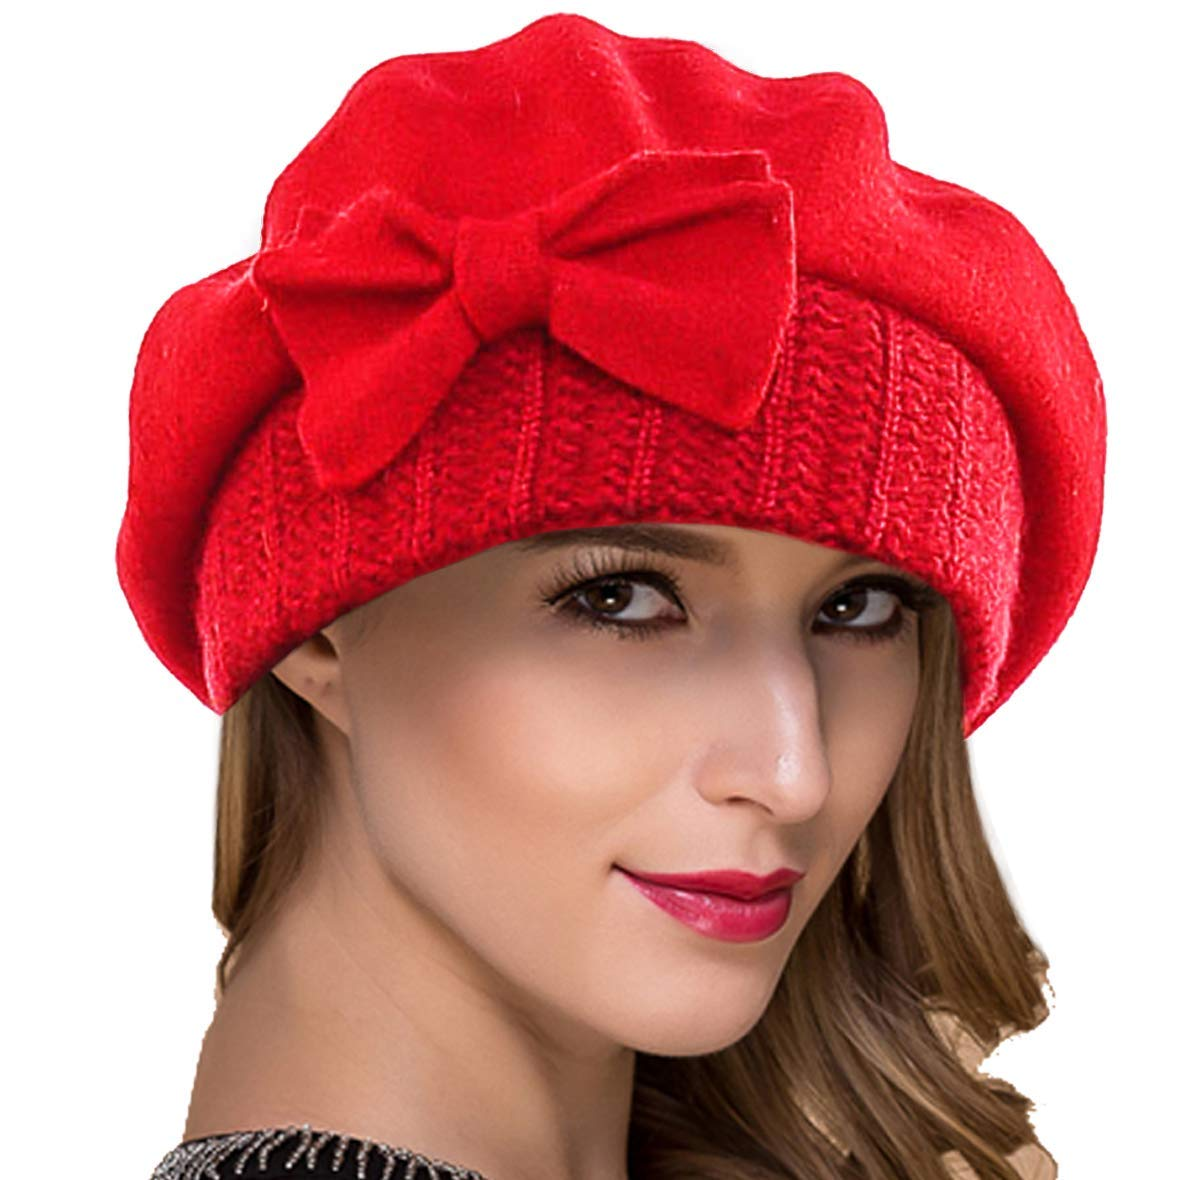 f55e0279e Cheap Knit Beret Hats For Women, find Knit Beret Hats For Women ...